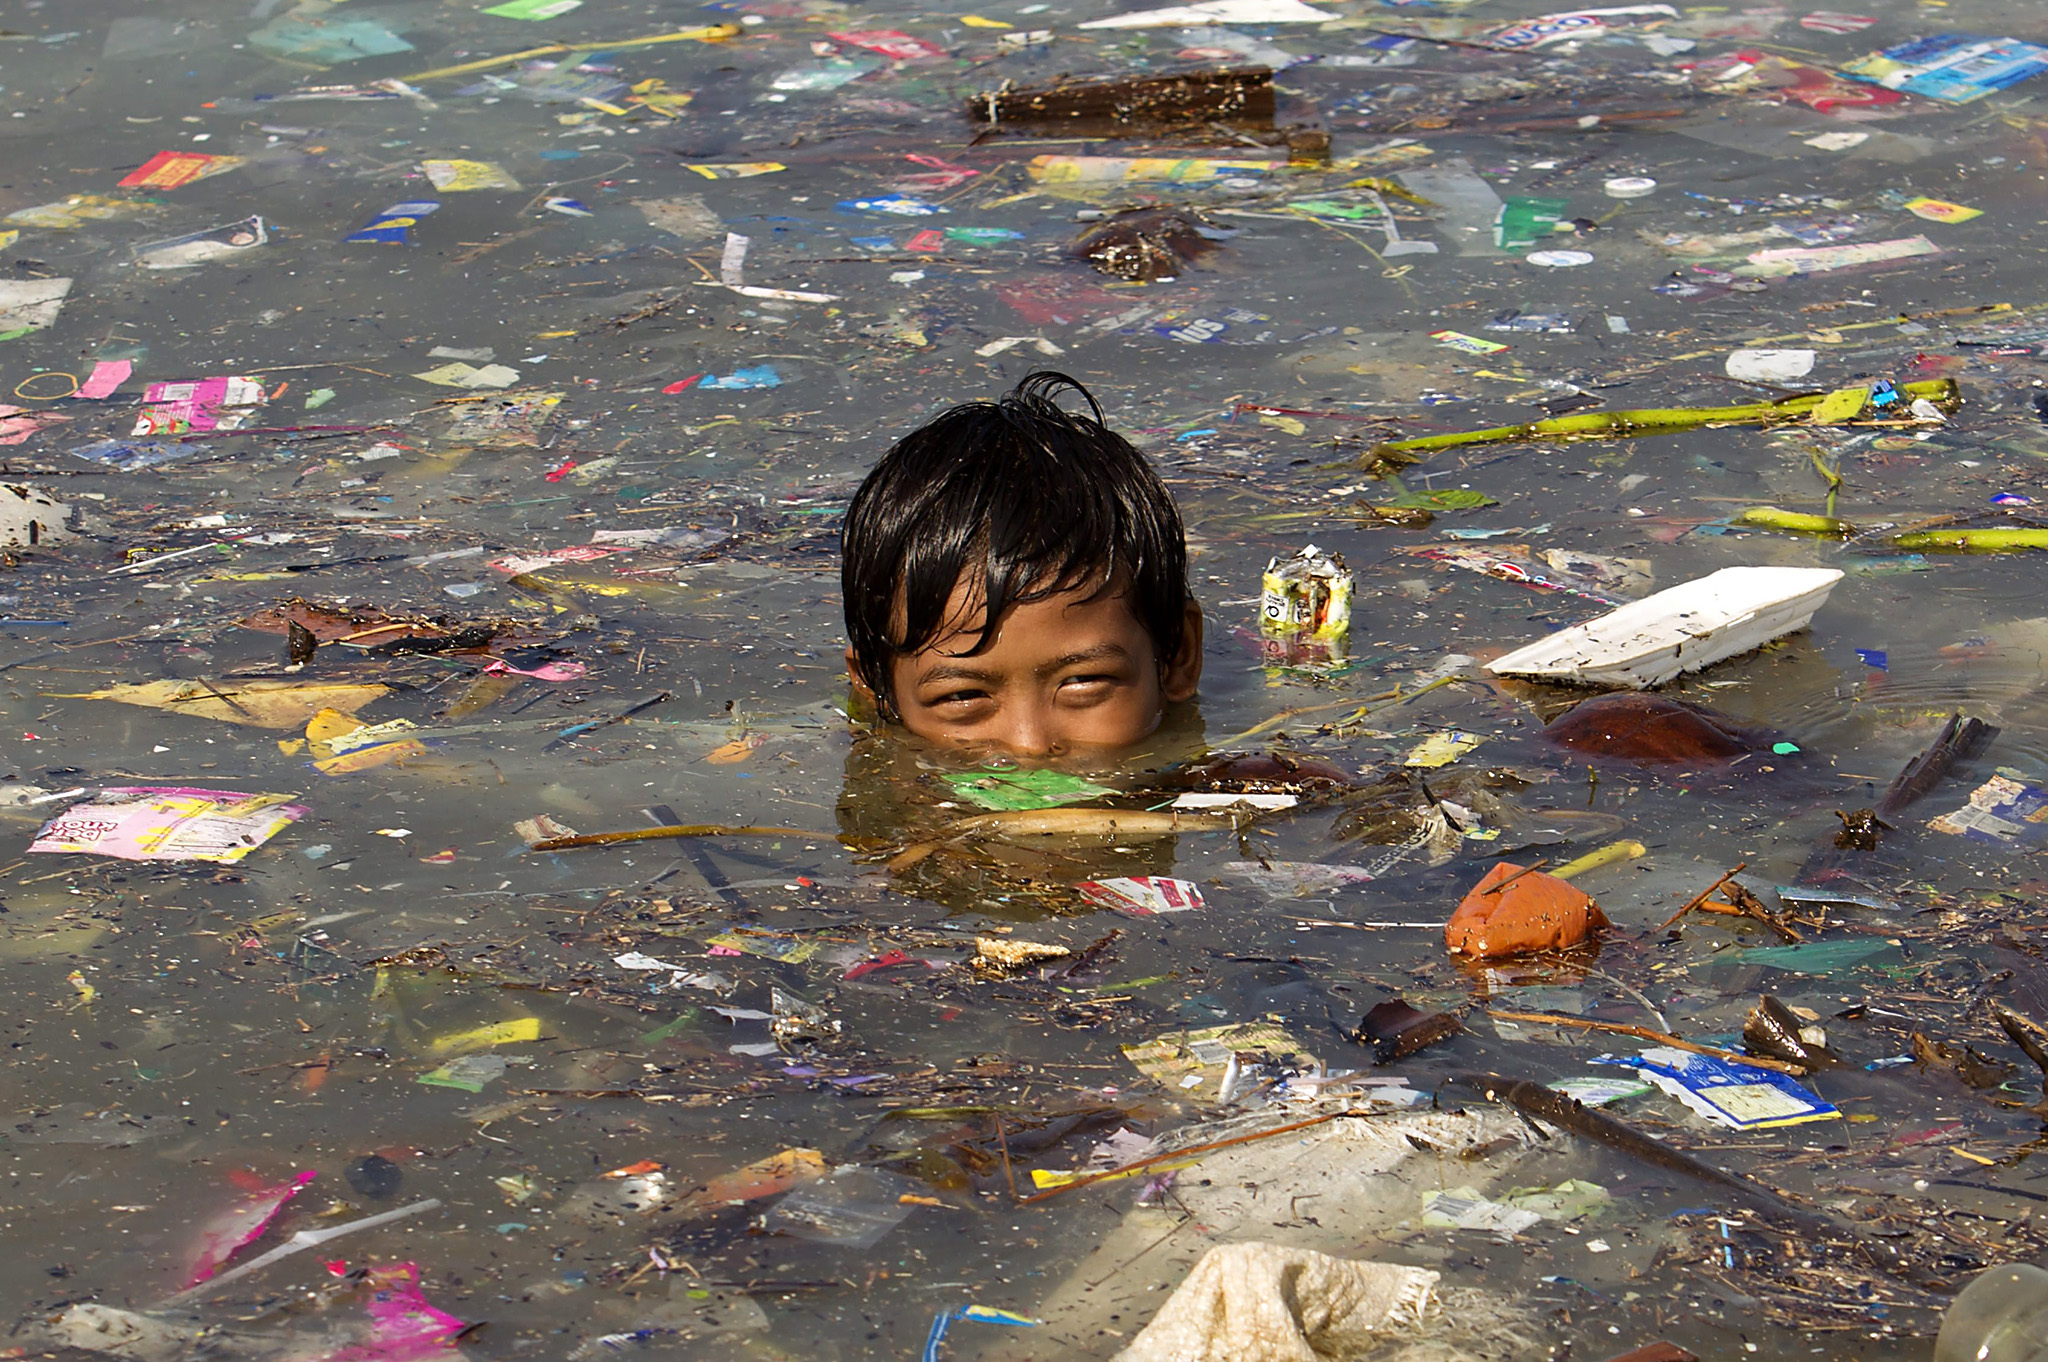 A Filipino boy swims among washed up rubbish in Manila bay, the Philippines, 23 September 2014. Countries and organizations began to announce measures to reduce greenhouse gas emissions and divest in fossil fuels on the one-day UN Climate Summit, where more pledges to reduce climate change are expected. Addressing the controversial issue of taxing or trading in carbon emissions, the World Bank on 22 September 2014, identified at least 73 countries that advocate putting a price on the release of carbon dioxide into the atmosphere. They represent a combined 54 per cent of global greenhouse gas emissions blamed for global warming, and include major emitters China, Russia and members of the European Union, emerging markets Indonesia, Mexico and South Africa, and vulnerable island countries including the Philippines, Kiribati and Nauru.  EPA/RITCHIE B. TONGO